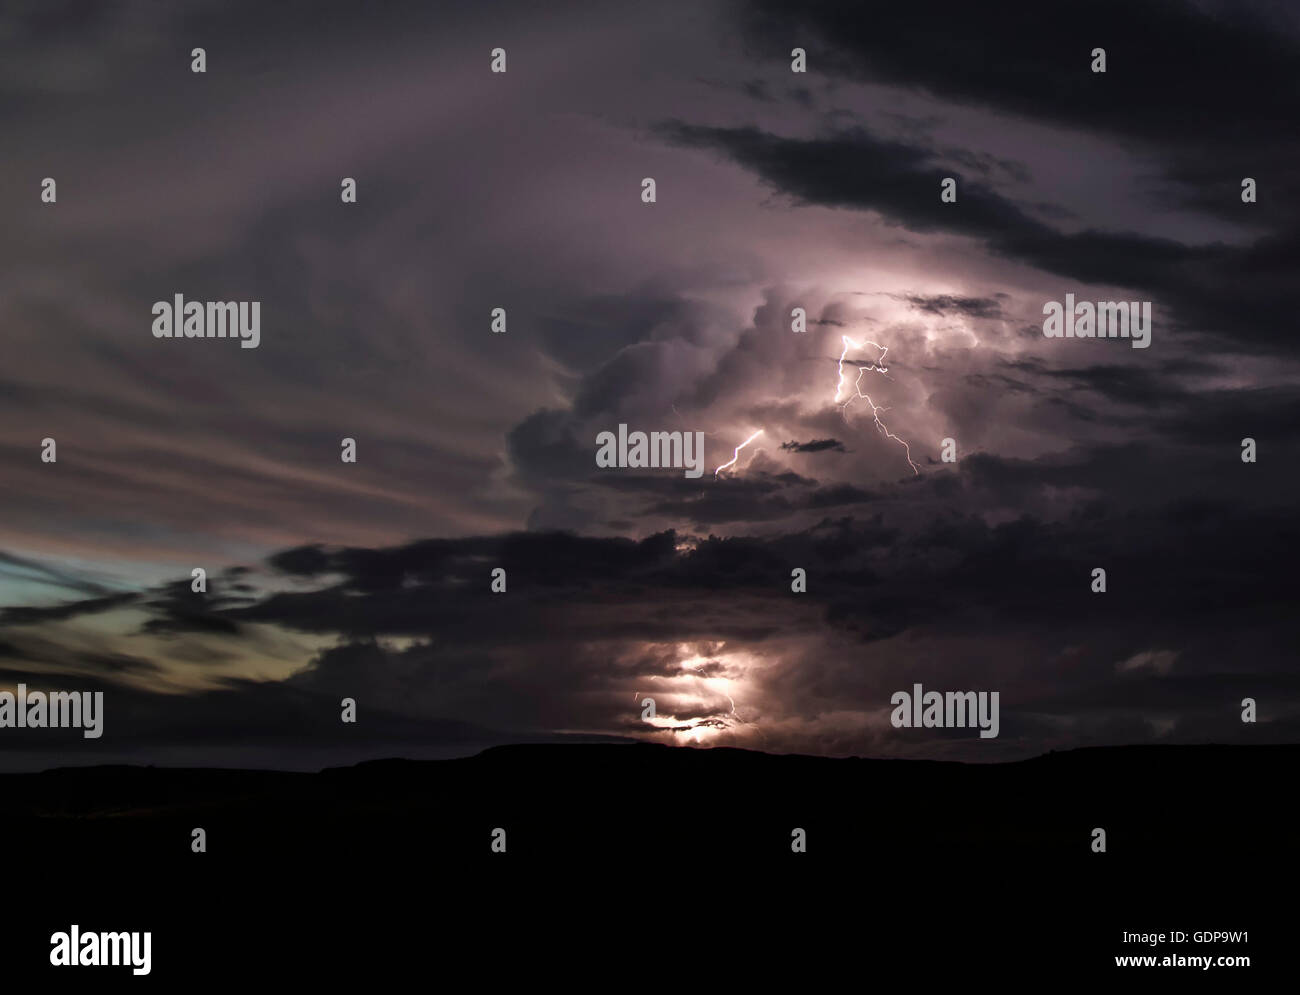 A powerful updraft ricochets off the stratosphere creating a large, expanding anvil cloud.  Lightning shoots out - Stock Image